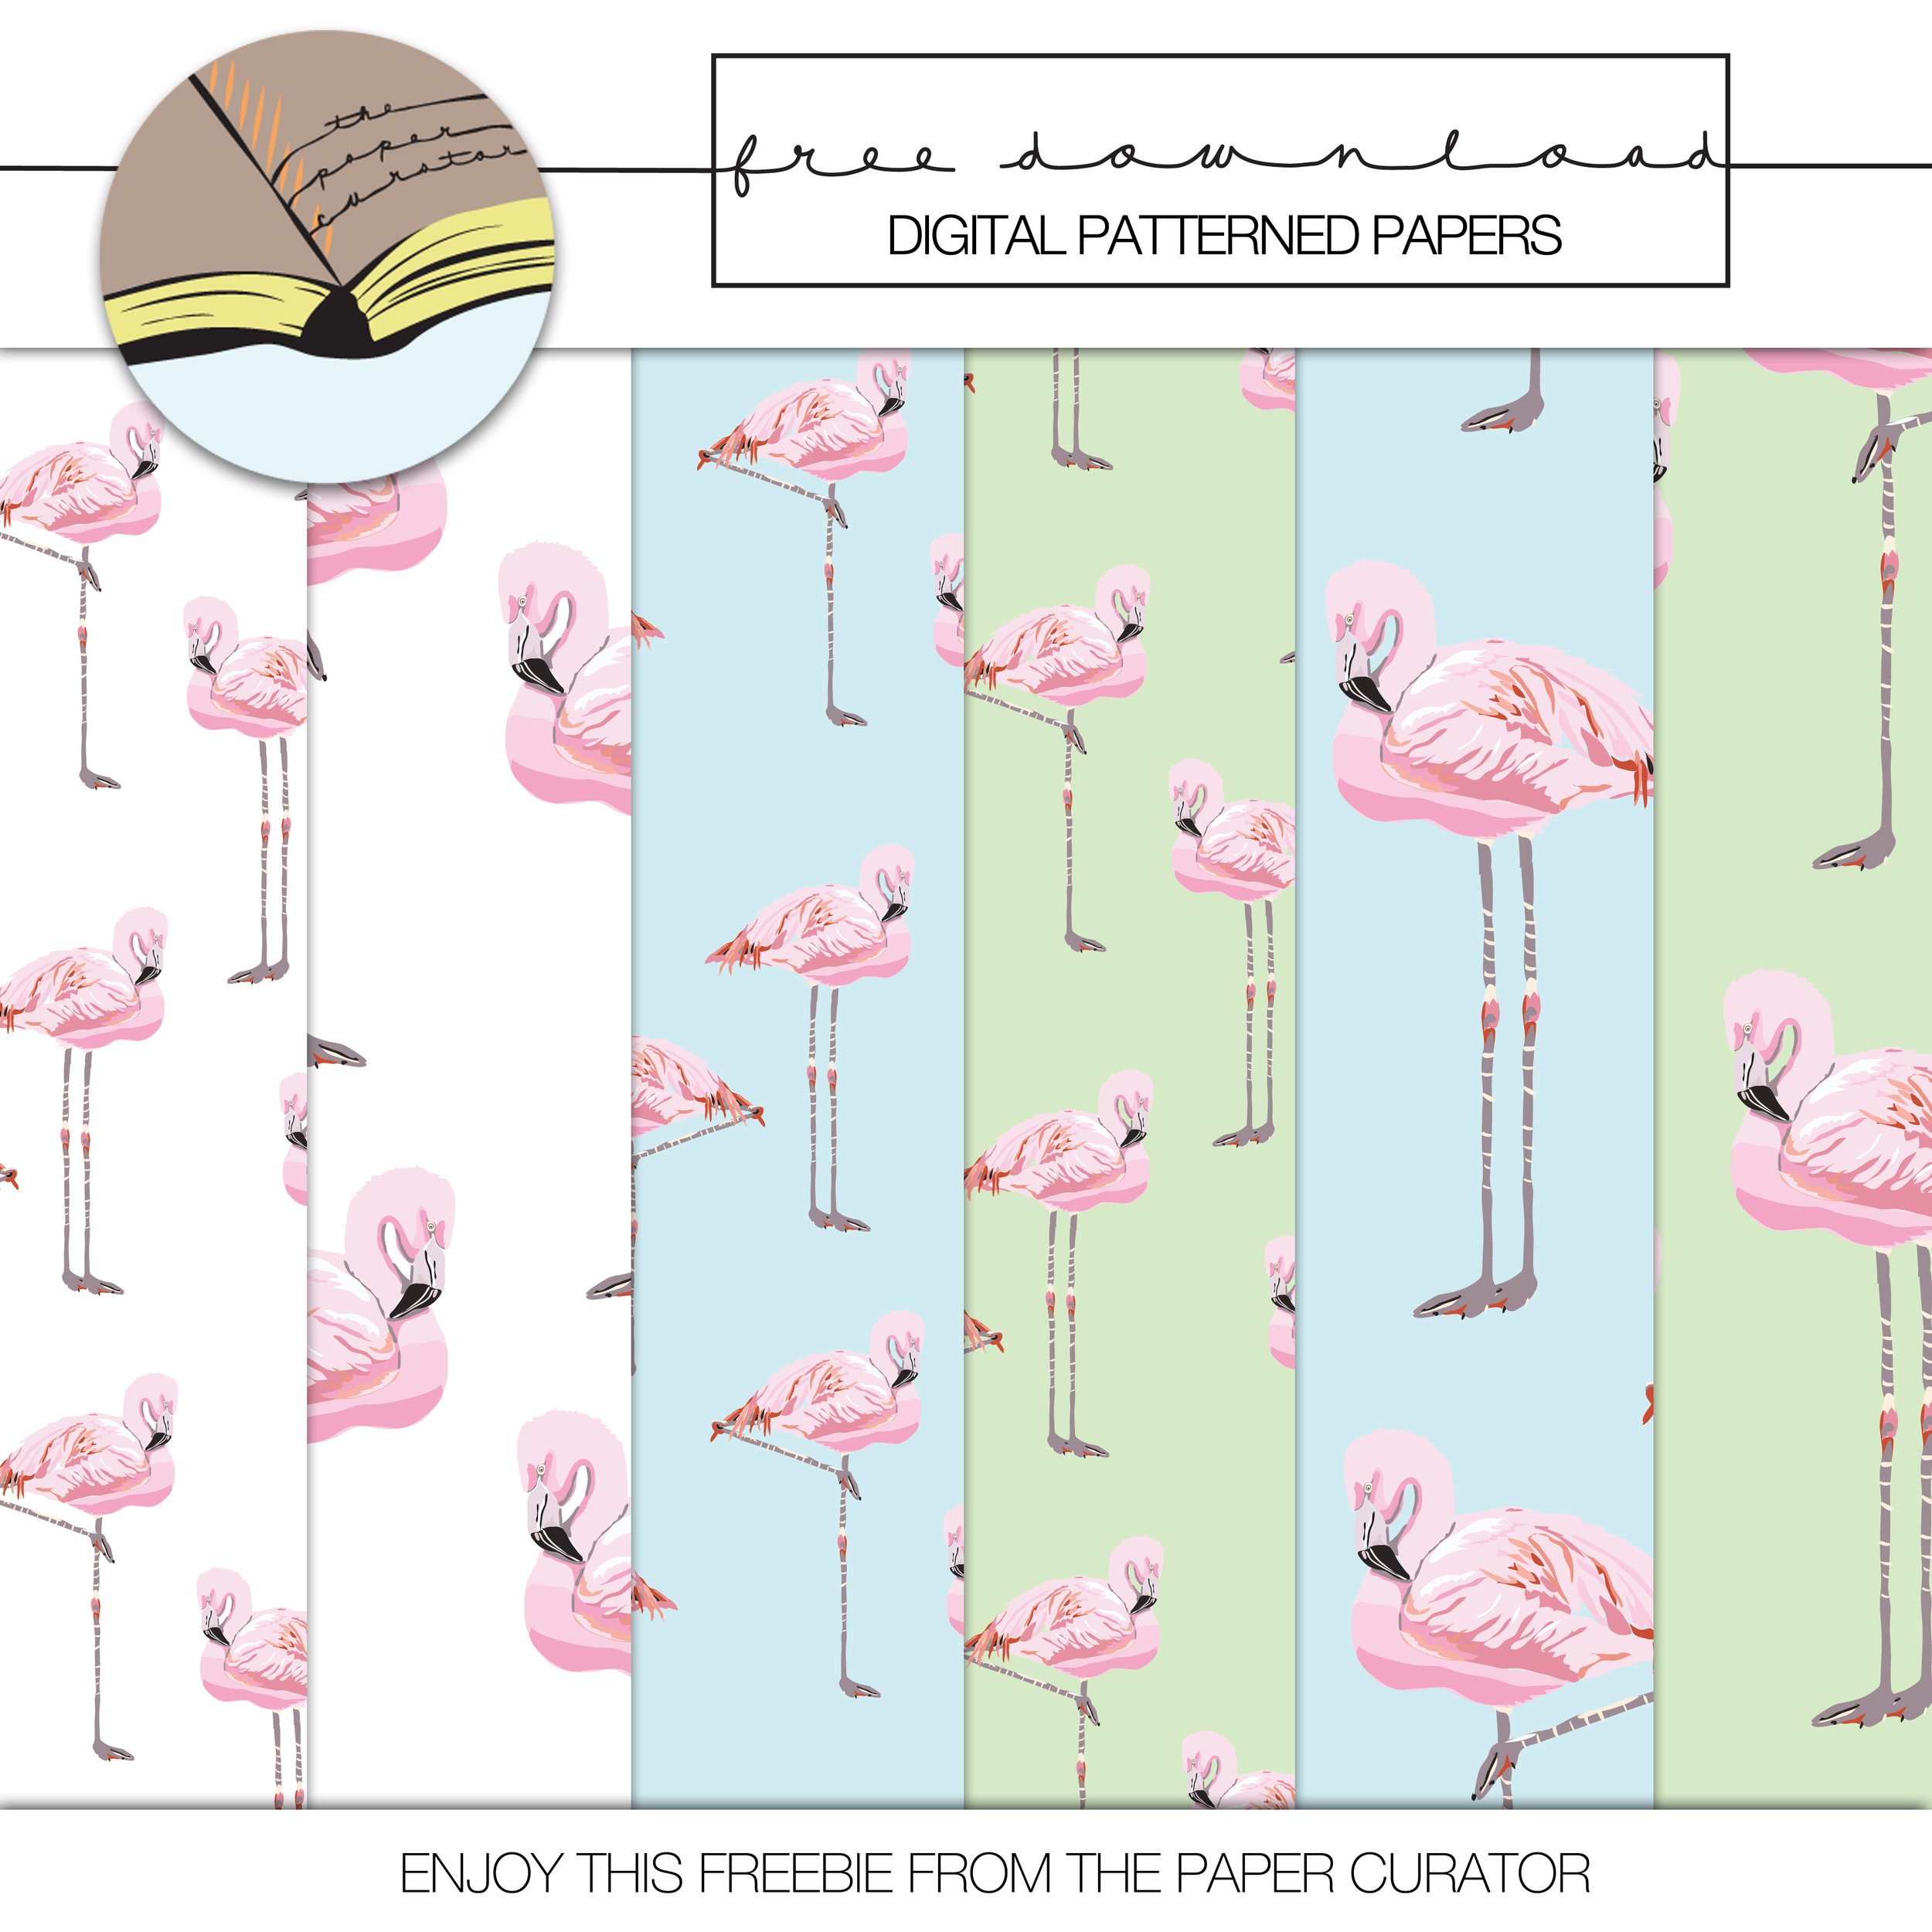 'FLORIDA' LAYOUT + FREE FLAMINGO PATTERN PAPER DOWNLOAD   THE PAPER CURATOR